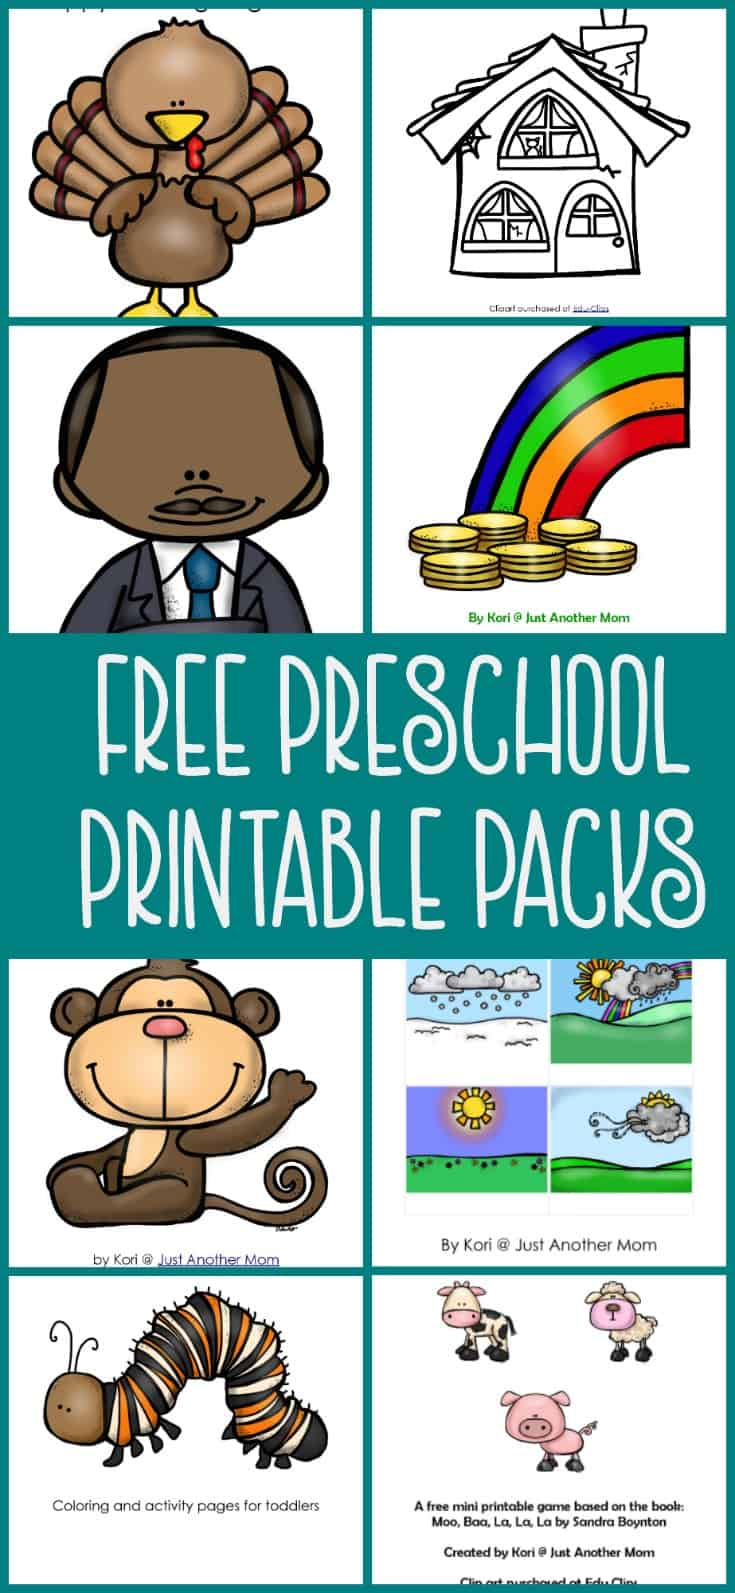 Are you planning to do tot school or preschool at home? Maybe you're looking for some resources for your home daycare? Be sure to check out my free preschool printable packs.